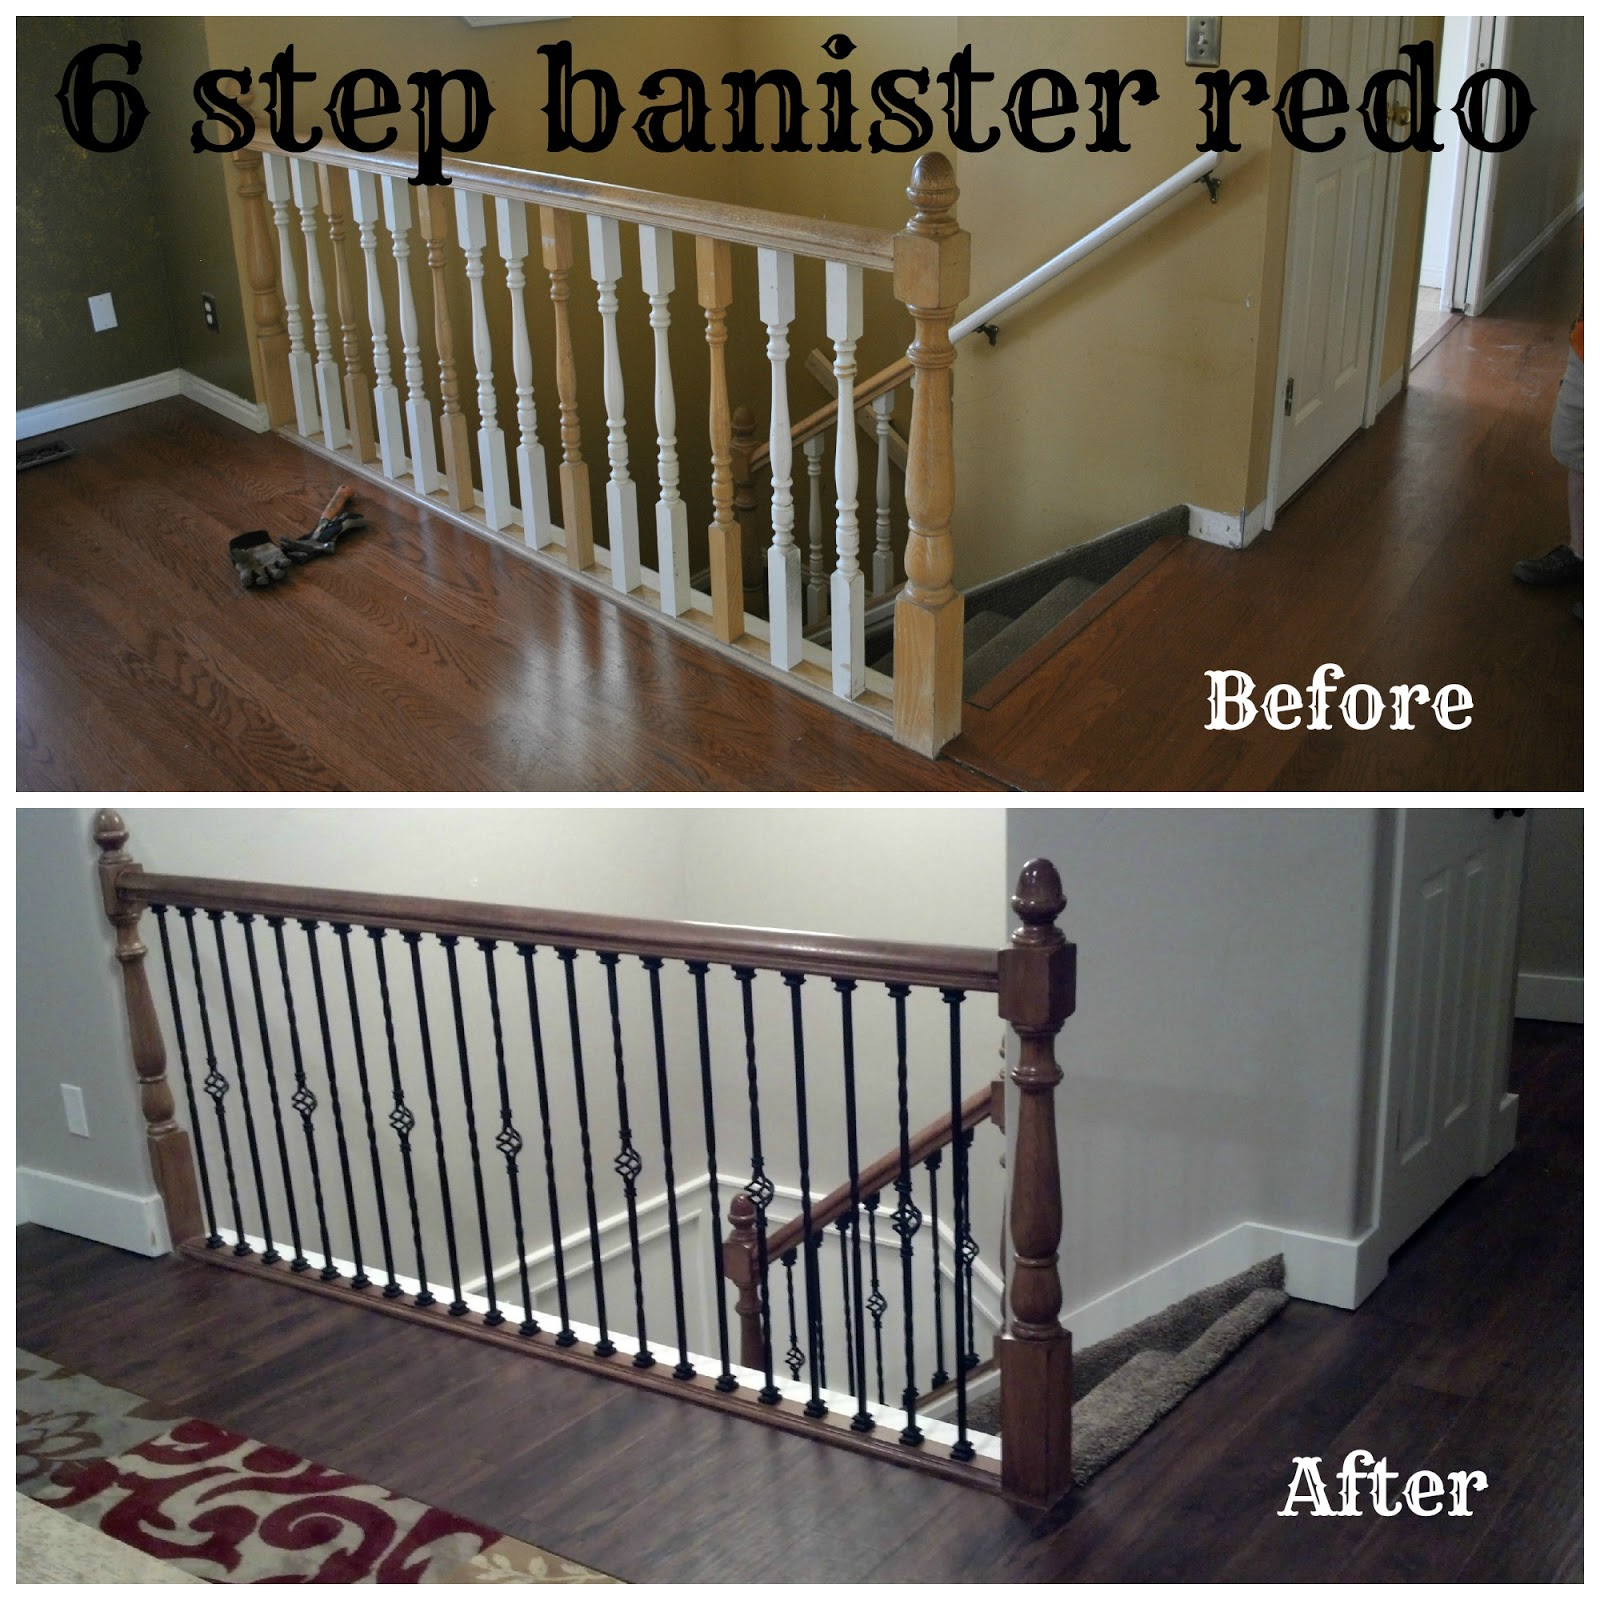 Her Is How We Did Our Banister Redo In Just 6 Easy Steps